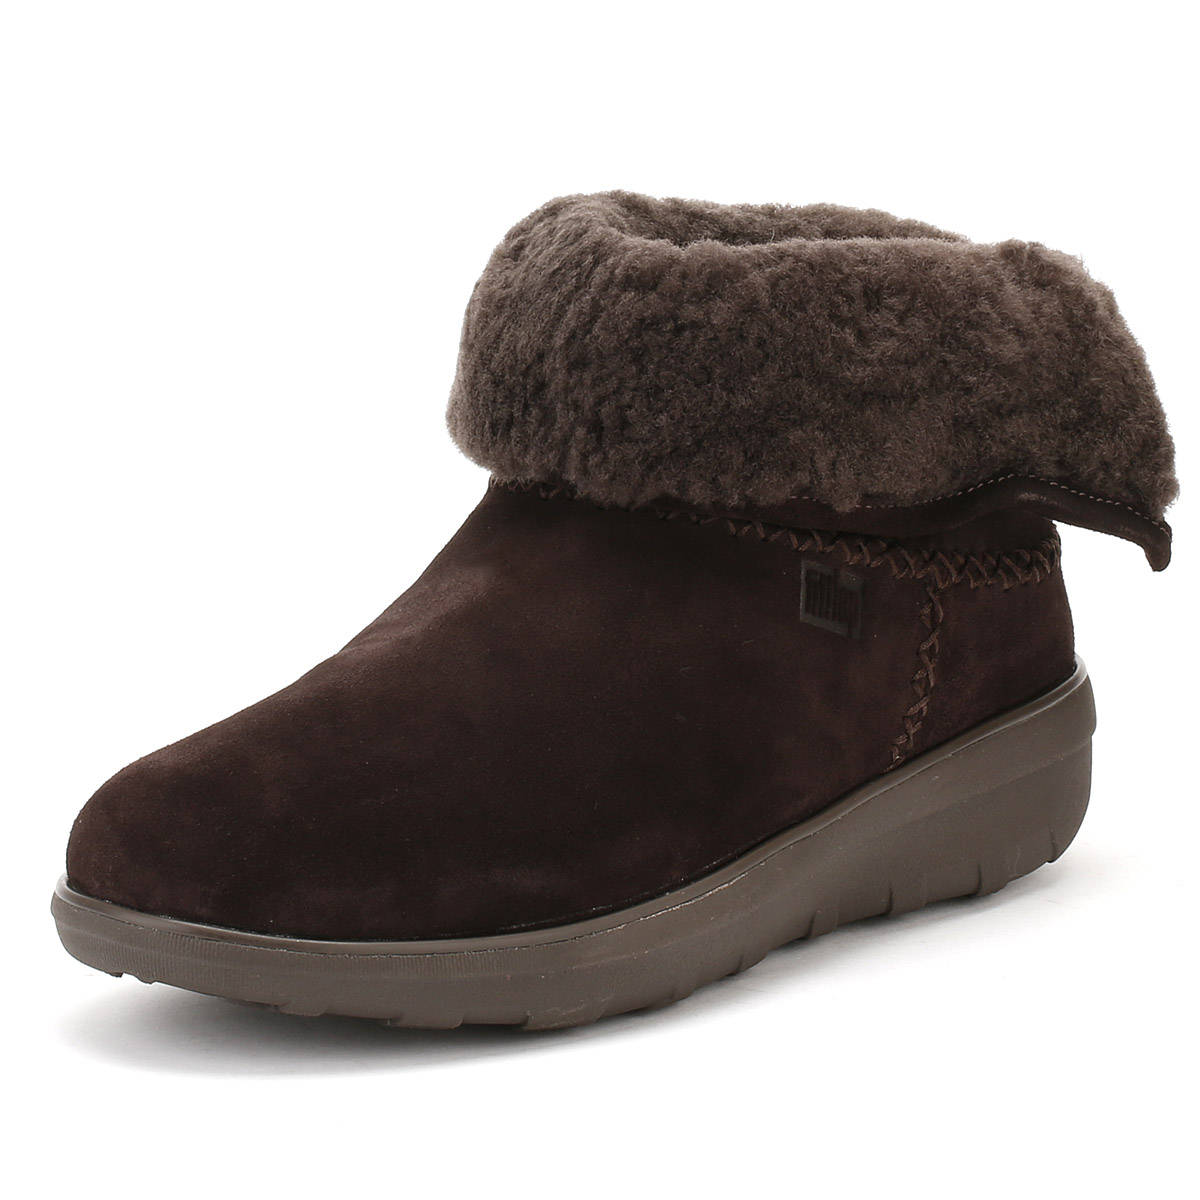 f263b2ceb9 Details about FitFlop Womens Chocolate Dark Brown Mukluk Shorty II Boots  Leather Winter Shoes